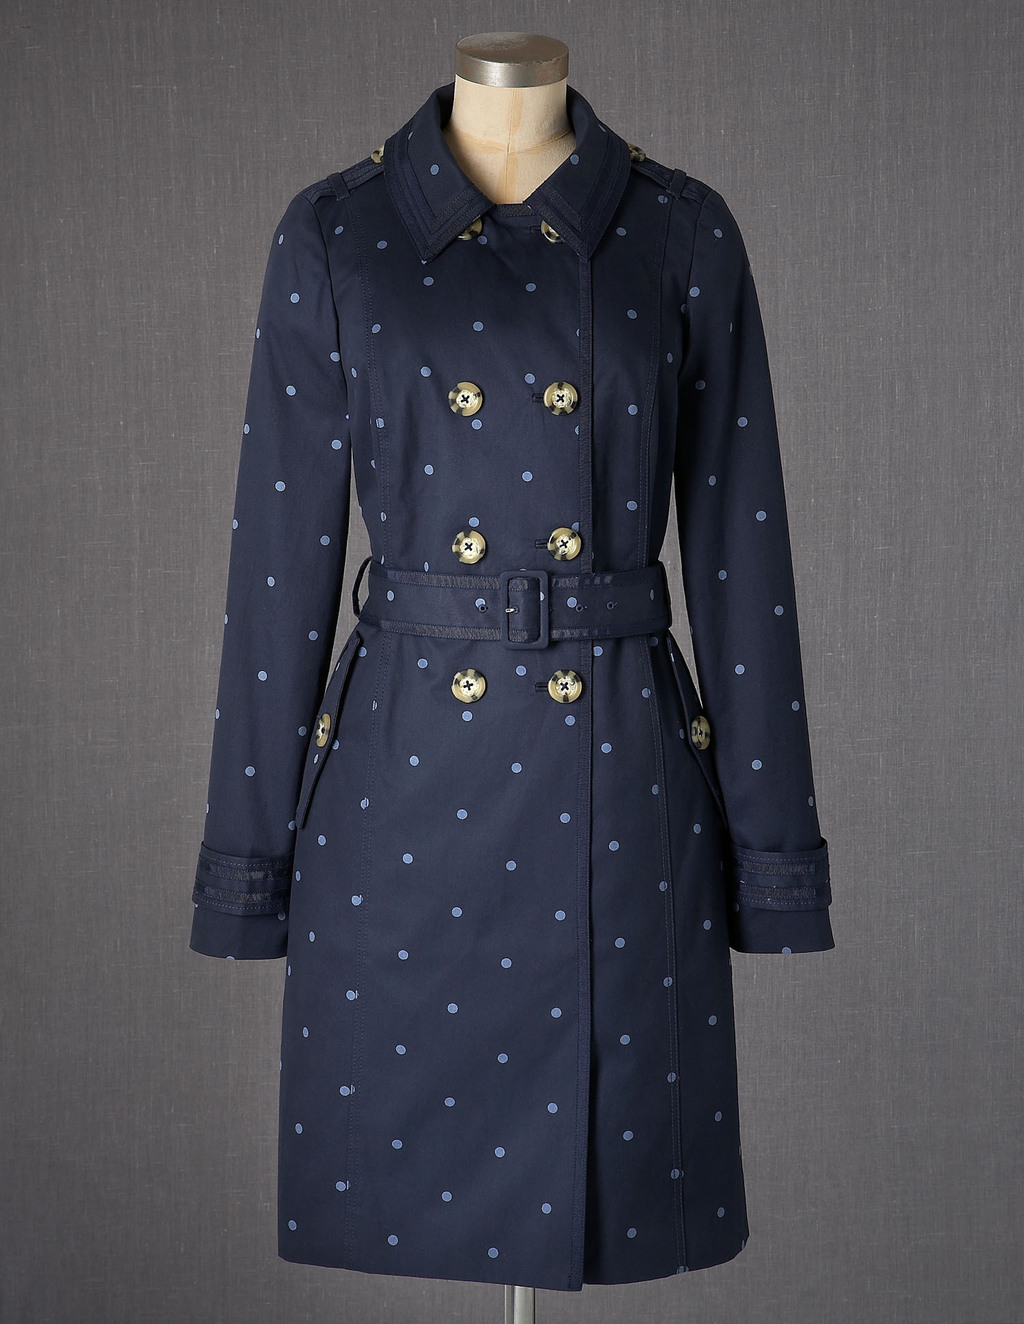 Autumn Trench - style: trench coat; pattern: polka dot; length: mid thigh; predominant colour: navy; fit: tailored/fitted; fibres: cotton - 100%; collar: shirt collar/peter pan/zip with opening; waist detail: belted waist/tie at waist/drawstring; shoulder detail: discreet epaulette; sleeve length: long sleeve; sleeve style: standard; texture group: cotton feel fabrics; pattern type: fabric; pattern size: light/subtle; season: a/w 2013